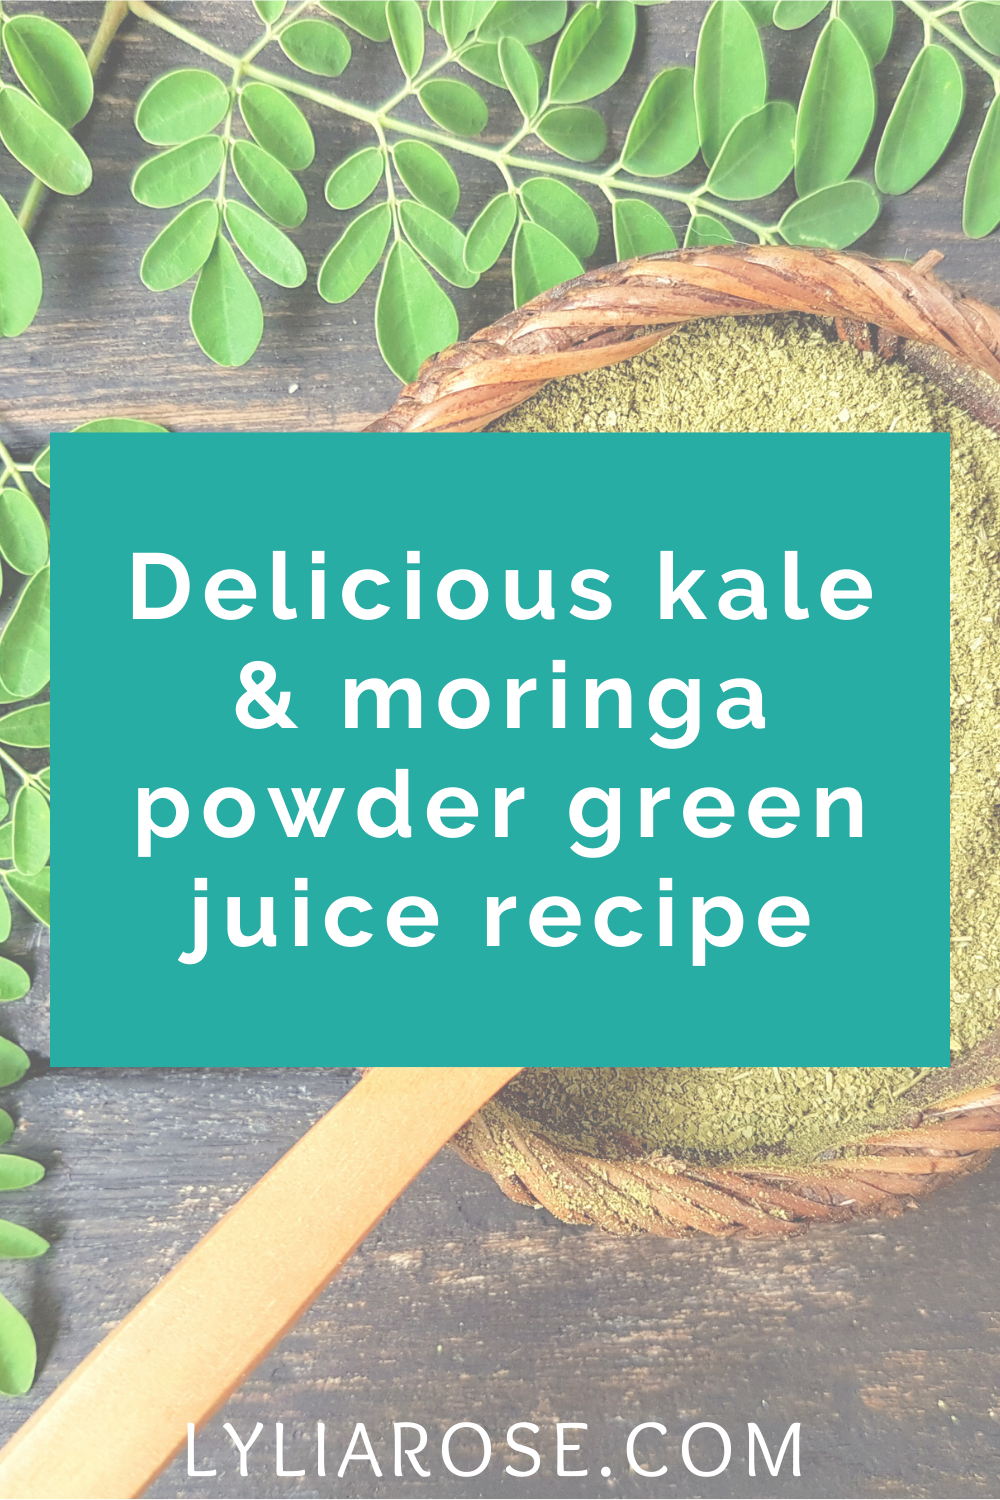 Delicious kale & moringa powder green juice recipe (2)